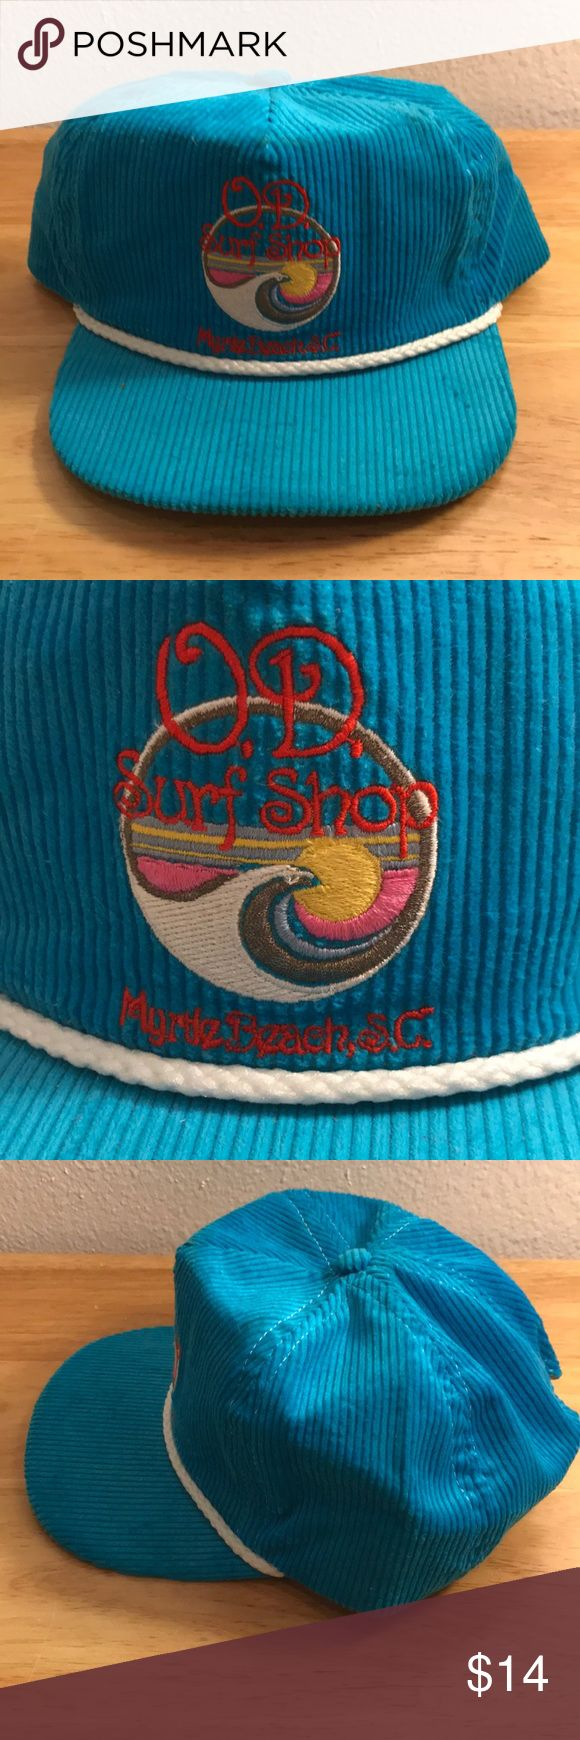 Vintage OD Surf Shop Corduroy Hat Vintage OD Surf Shop Corduroy Hat, Brand New, Never Worn or Used, 🎄WILL SHIP IN ONE DAY🎄All bundles of 2 or more receive 20% off. Closet full of new, used and vintage Vans, Skate and surf companies, jewelry, phone cases, shoes and more. Accessories Hats